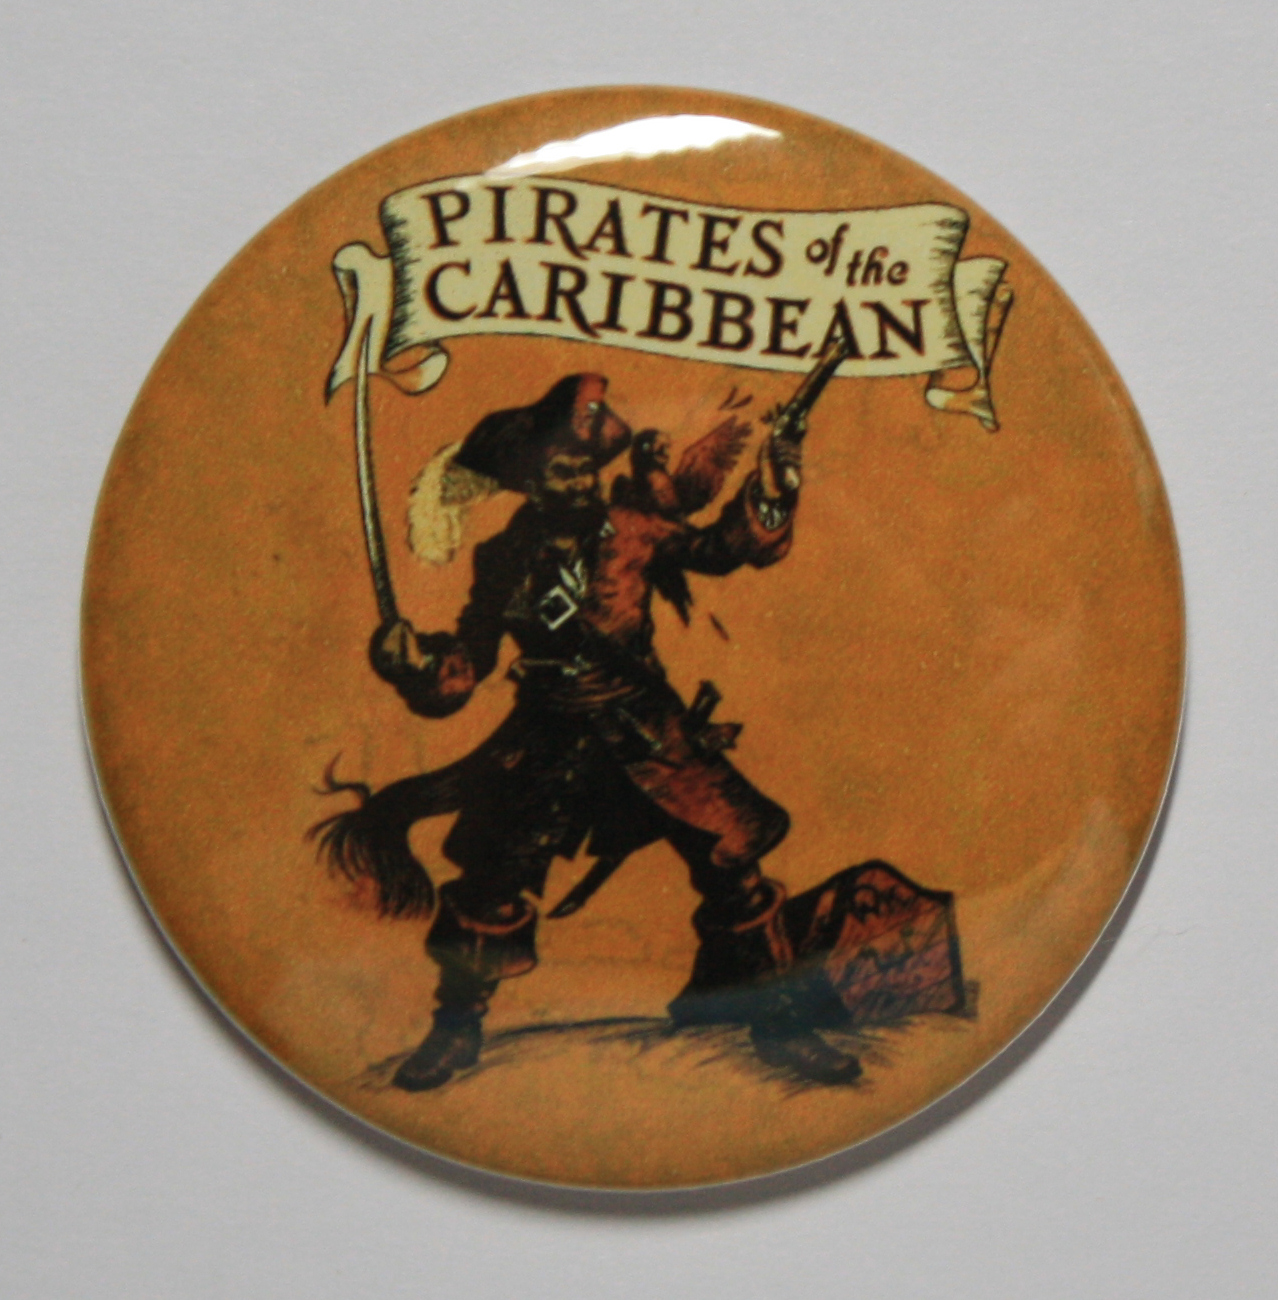 PIRATES OF THE CARIBBEAN MAGNET Disneyland Disney Poster Vintage Art